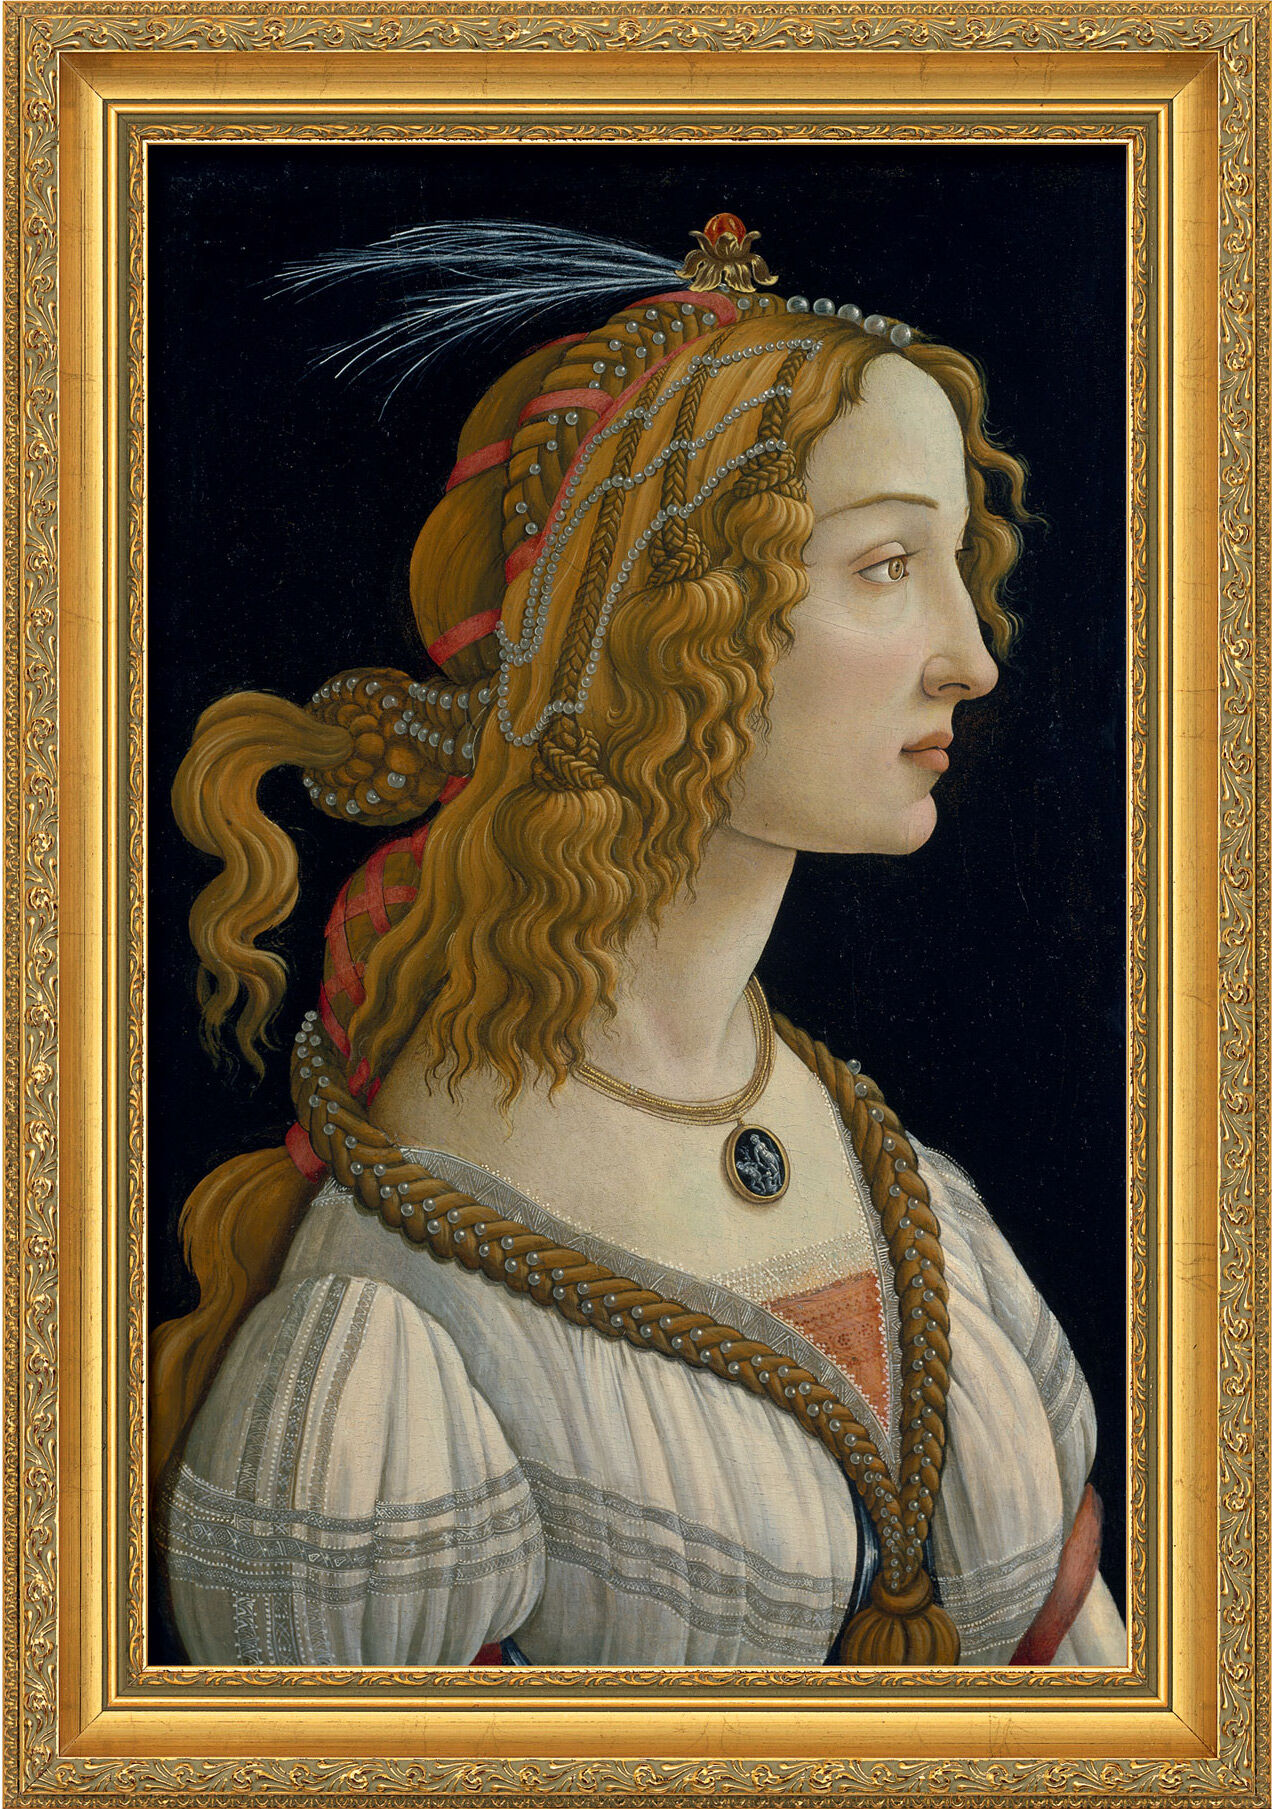 "Painting ""Feminine Ideal Image"" (1485/86) in a frame"